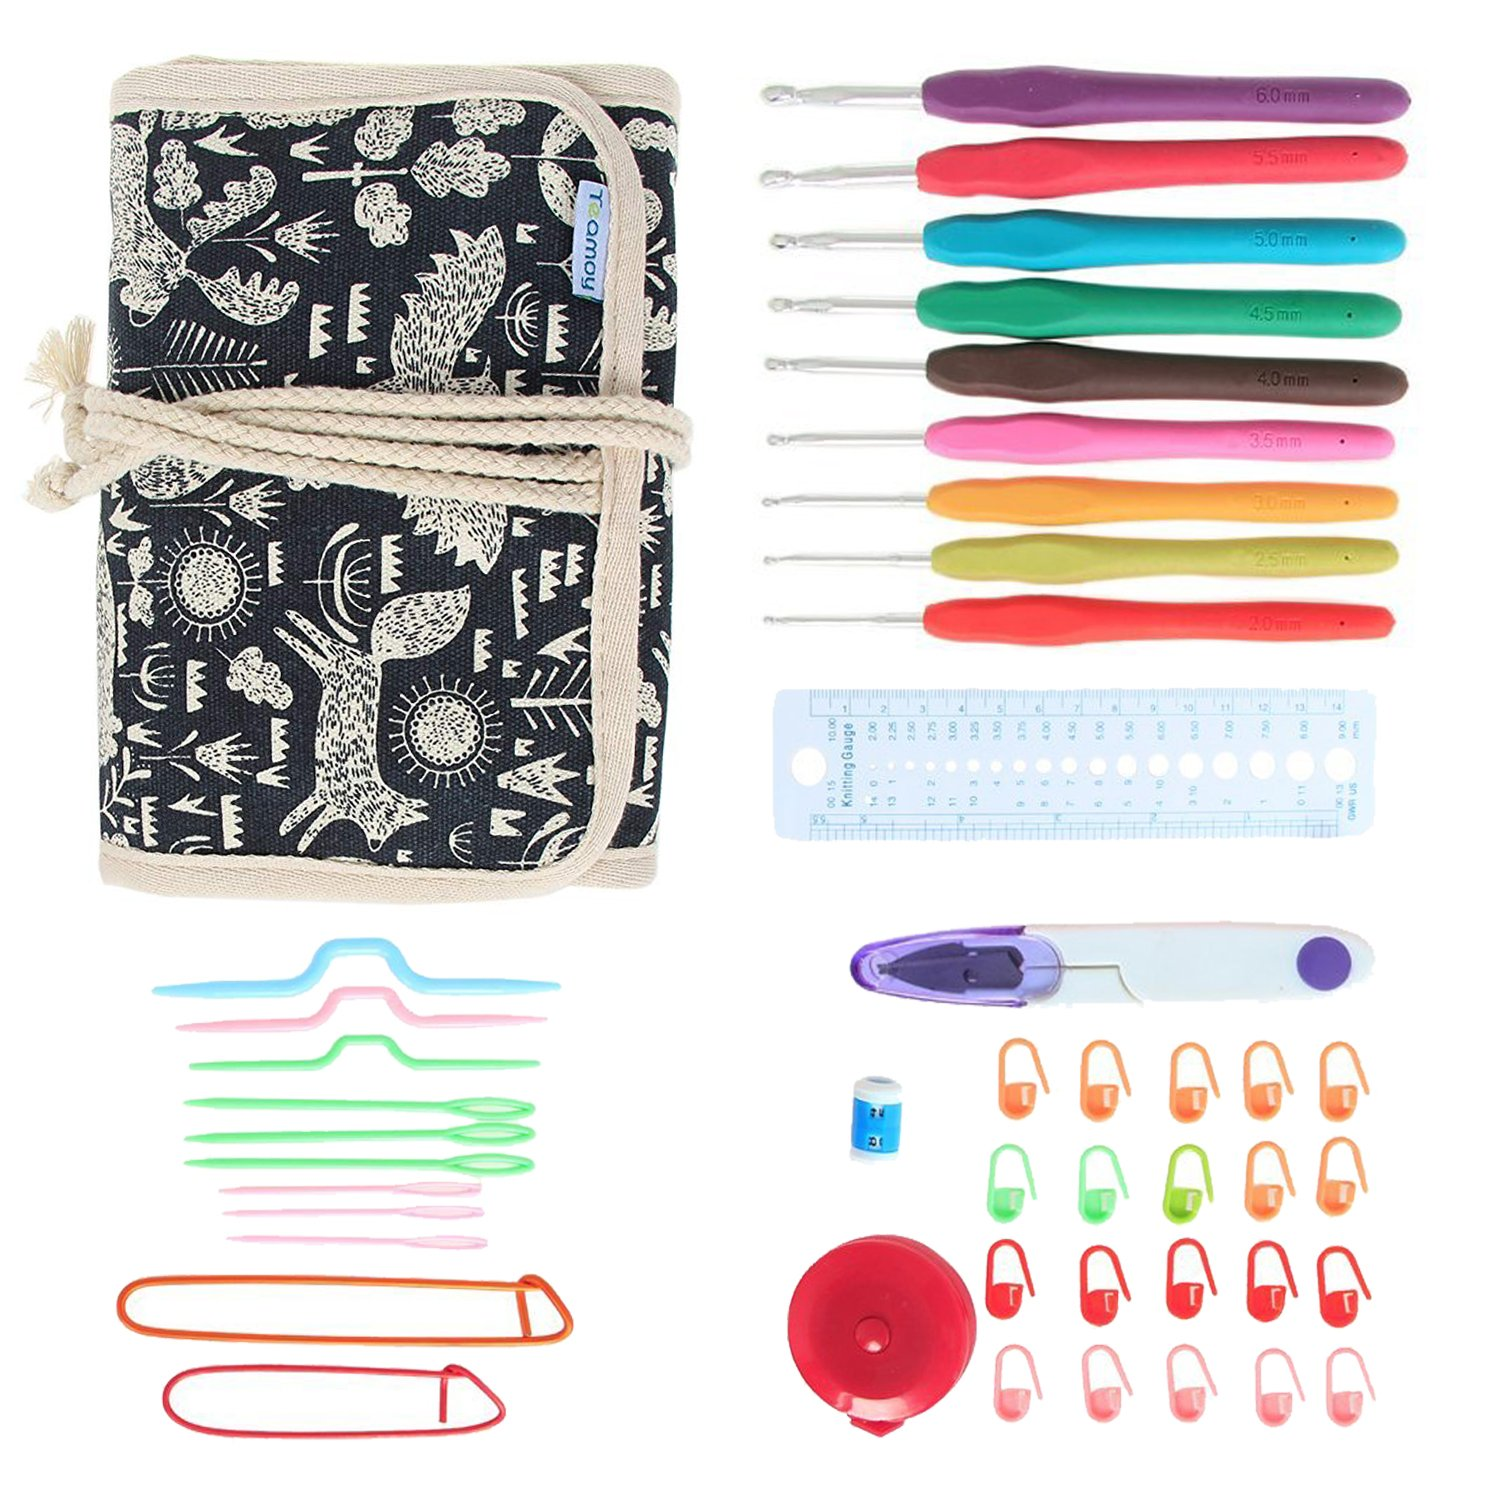 Teamoy Ergonomic Crochet Hooks Set, Crochet kit with 9pcs 2mm to 6mm Rubber Grip Needles and Accessories, Perfect Size for Quick Grab-and-Go Damai 4336923072